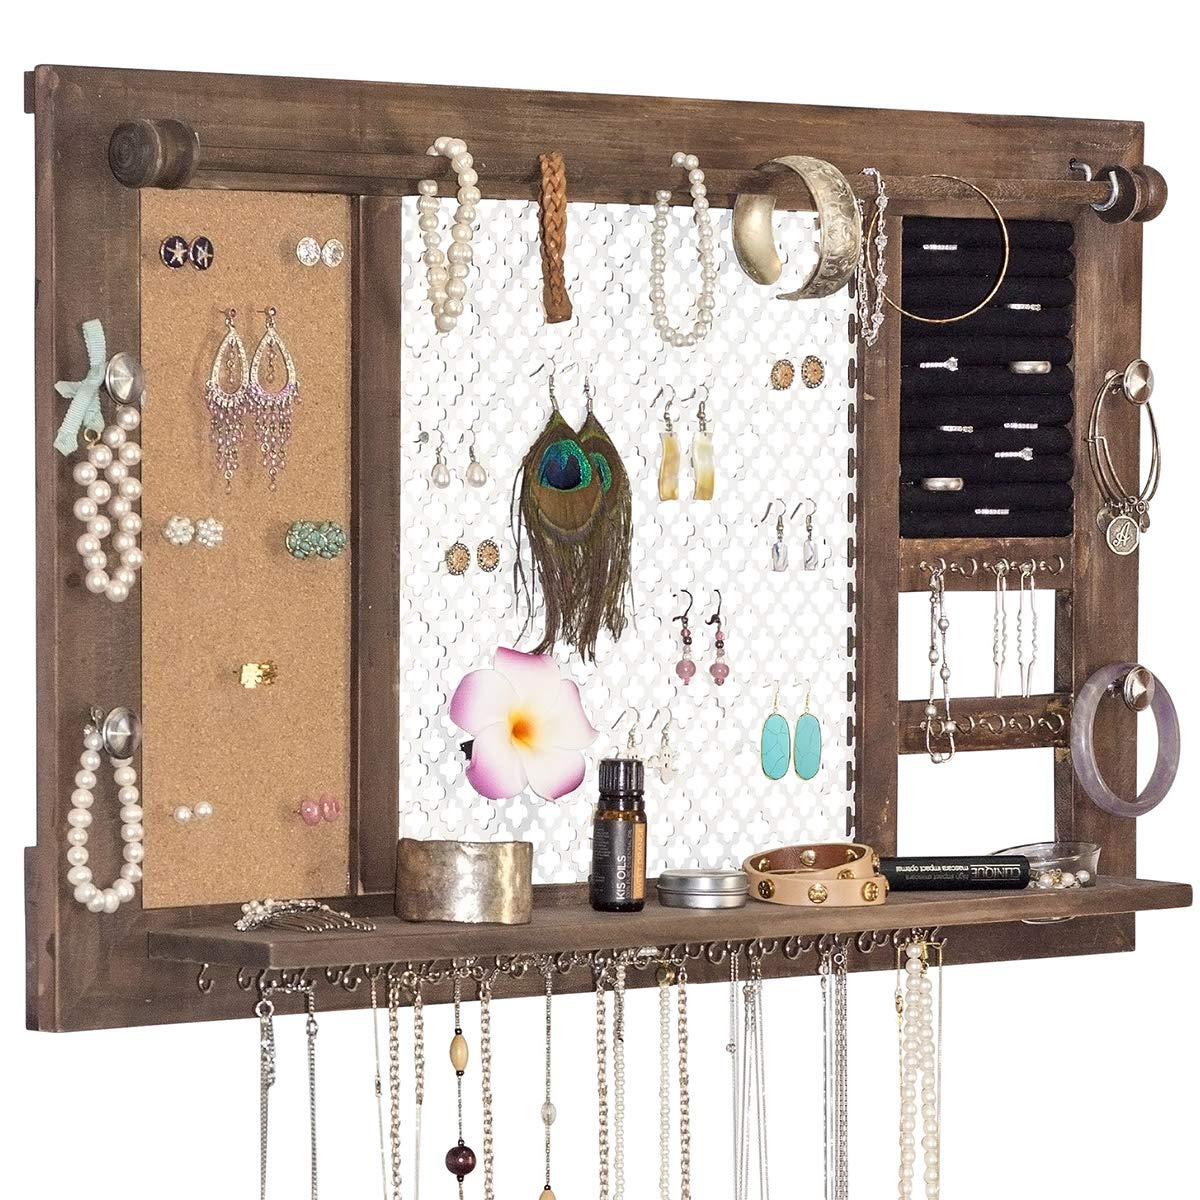 SoCal Buttercup Deluxe Rustic Wood Jewelry Organizer - from Hanging Wall Mounted Wooden Jewelry Display - Organizer for Earrings, Necklaces, Bracelets, Studs, and Accessories